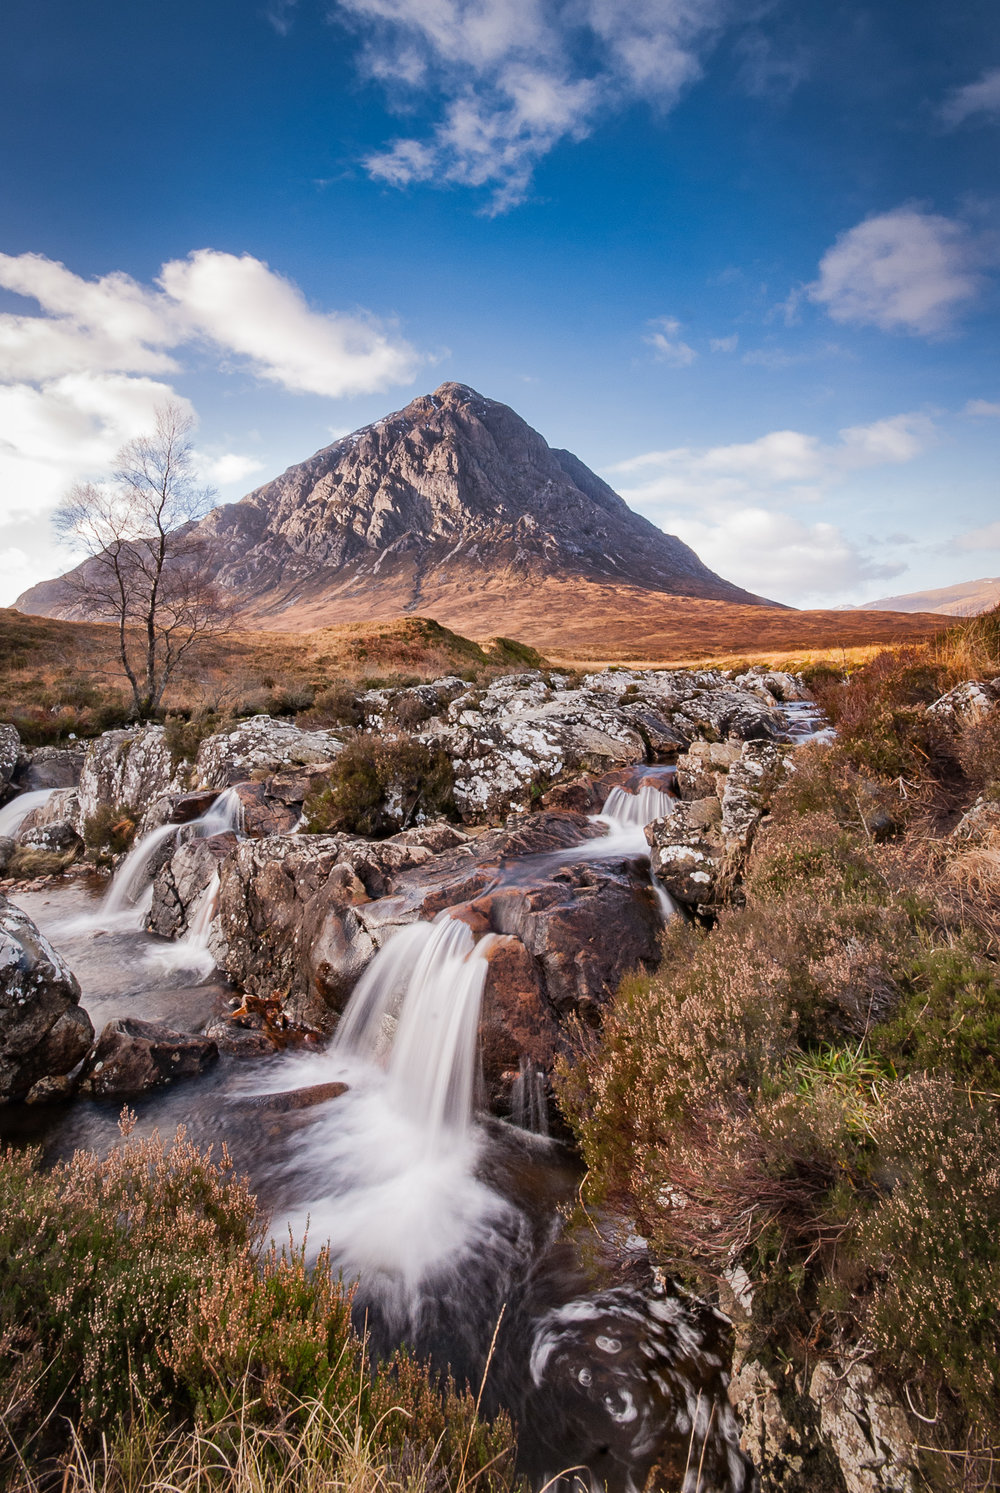 One of my early landscape images taken in Glen Coe in 2008.